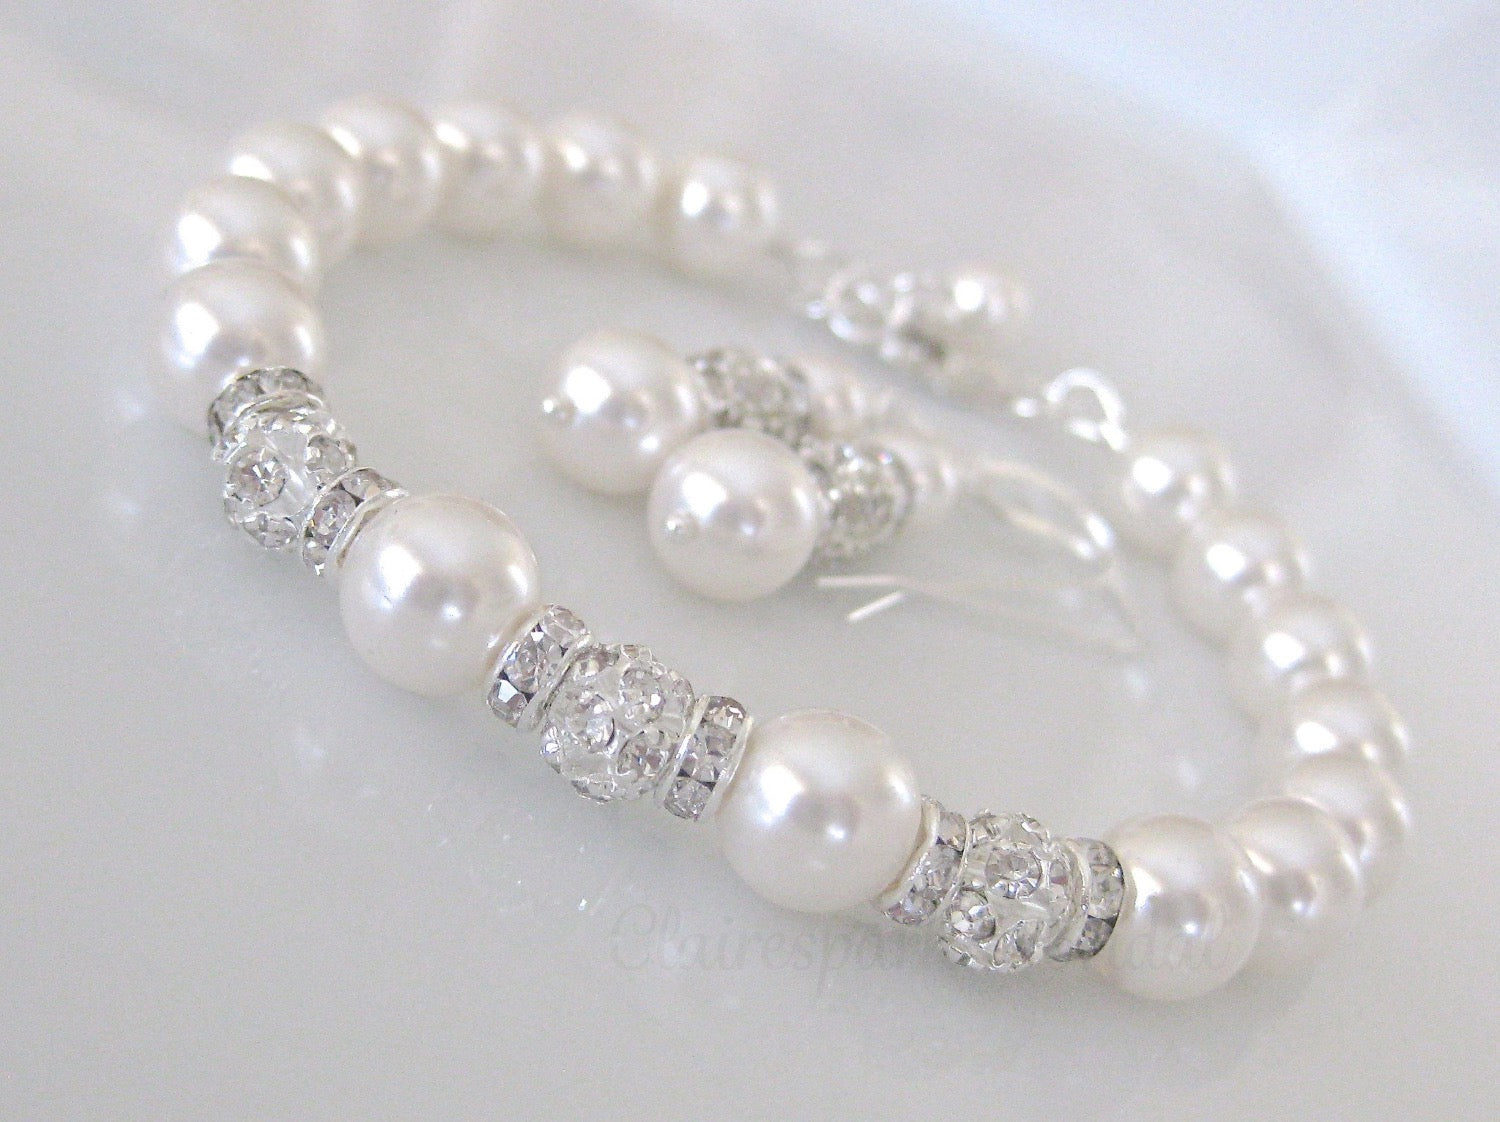 Bridal Jewelry Wedding Pearl Bracelet and Earring Set - Clairesbridal - 1